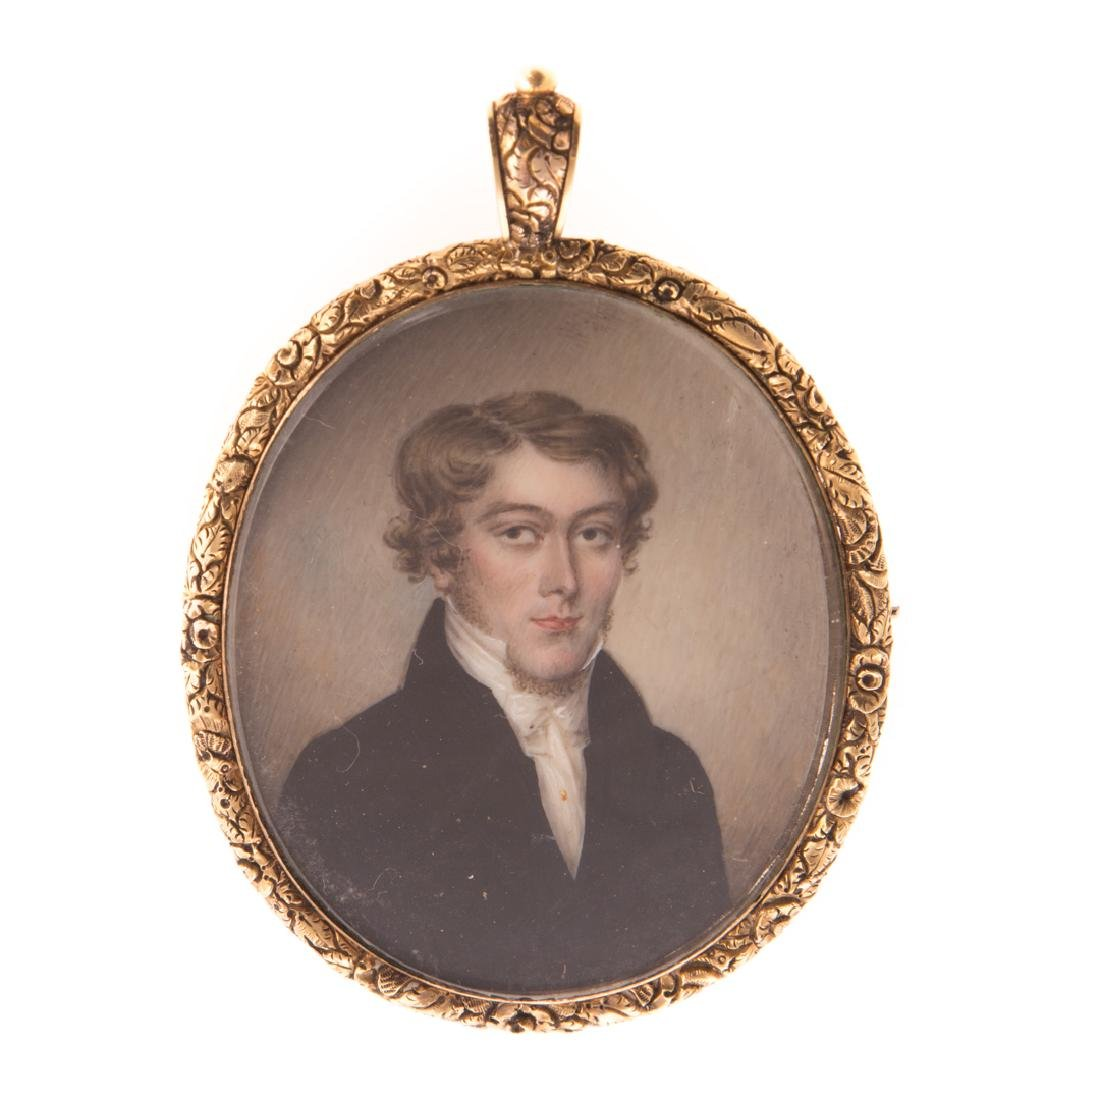 Anglo-American School. Portrait miniature of a man